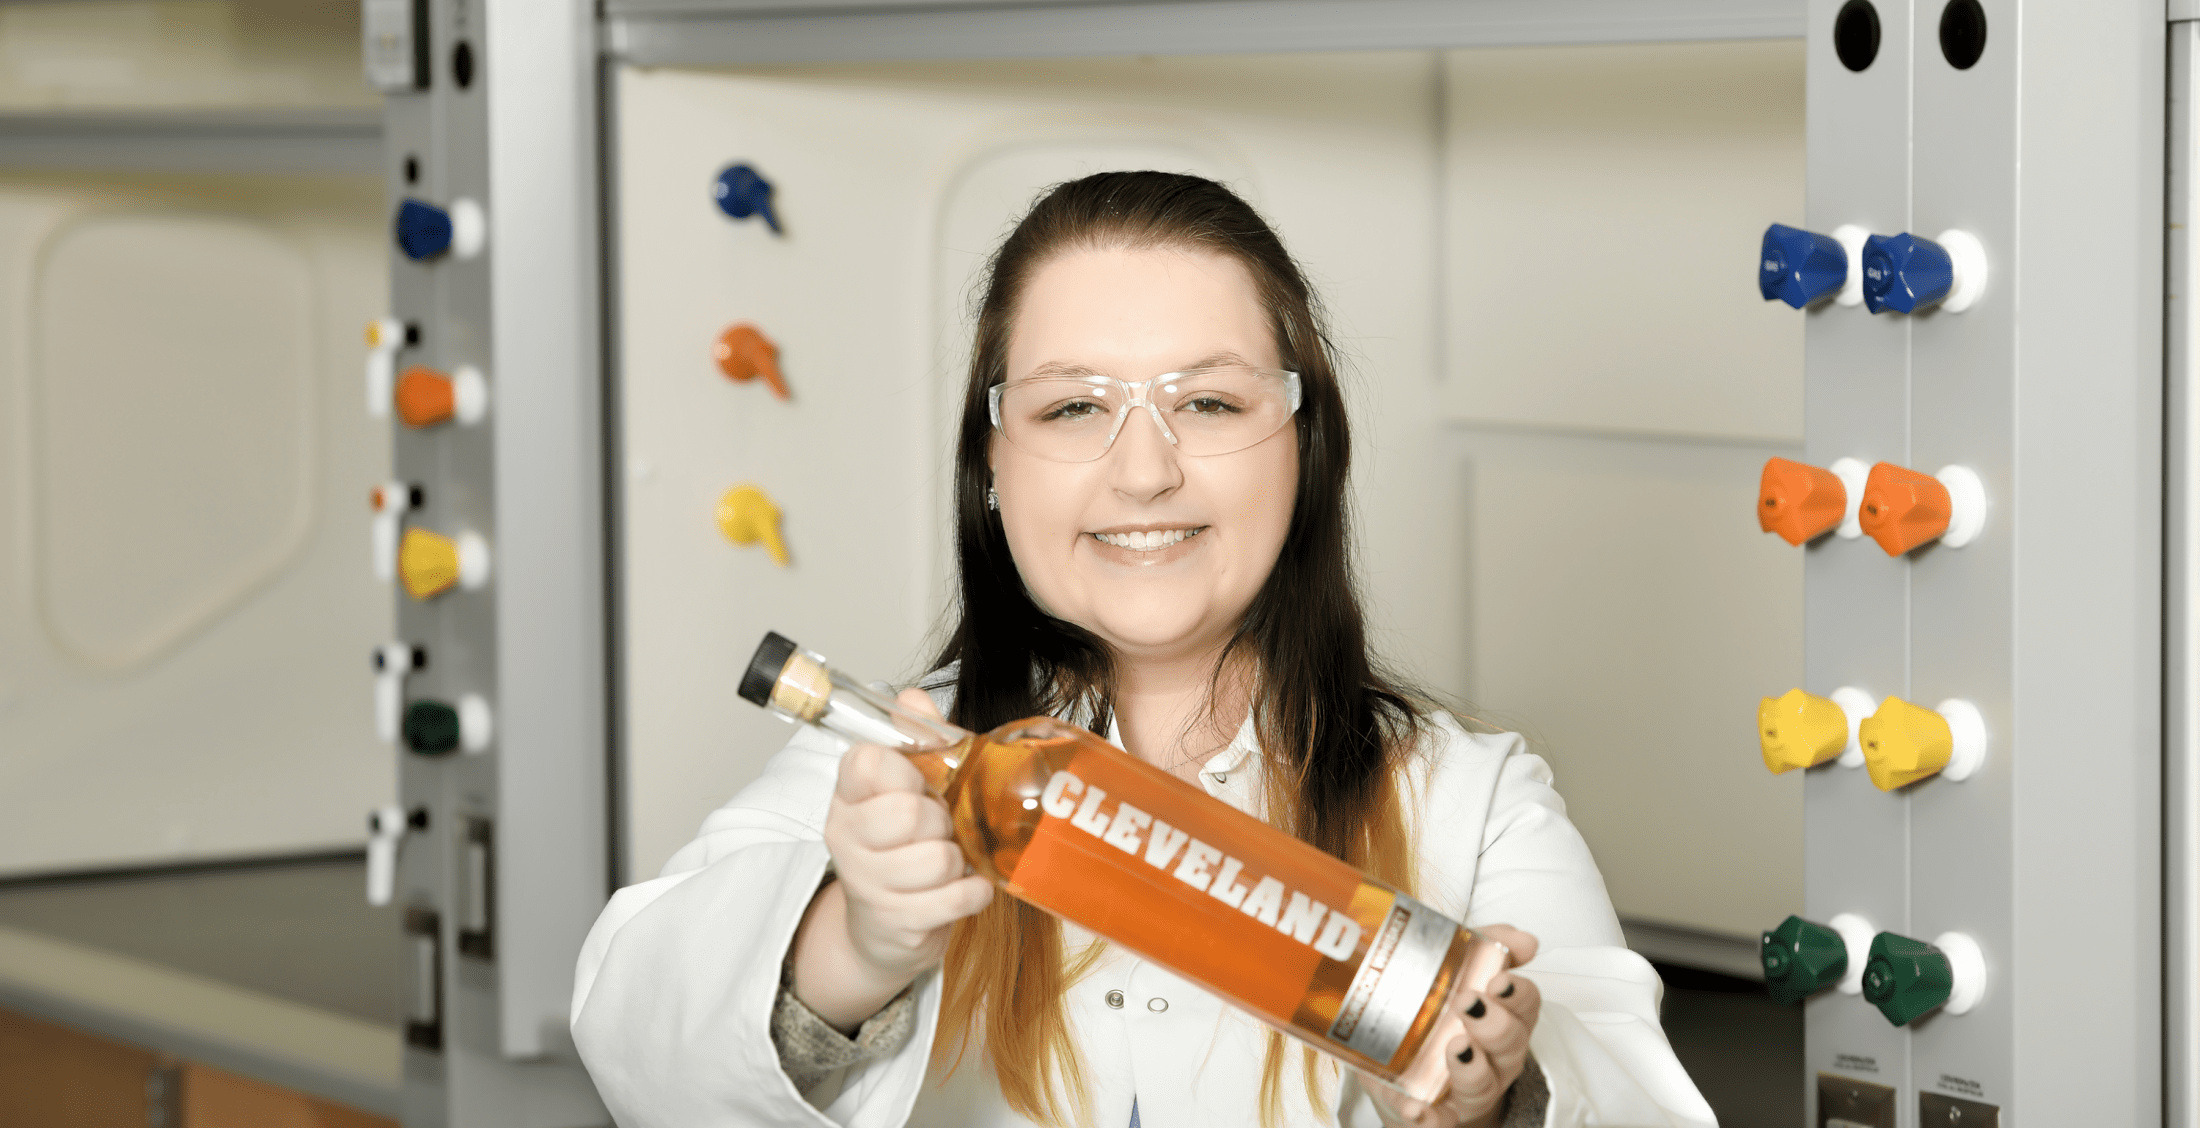 Heather Ketchum - young woman in a lab coat holding a bottle of whiskey